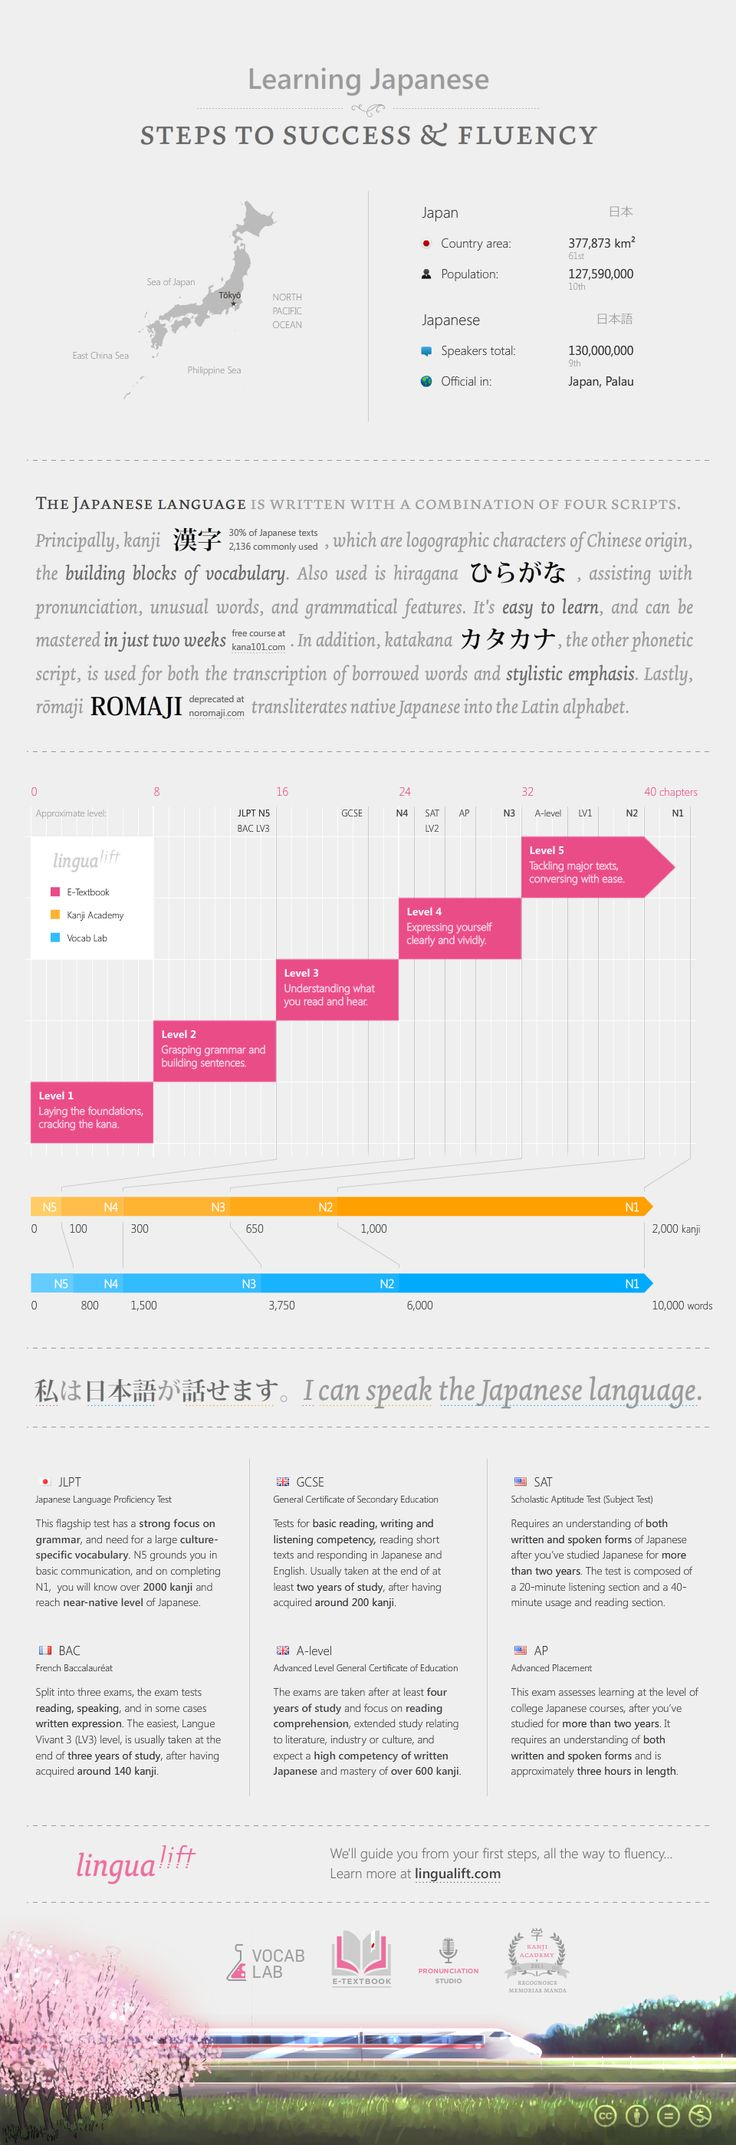 Everything you need to know about learning the Japanese language in one simple infographic.